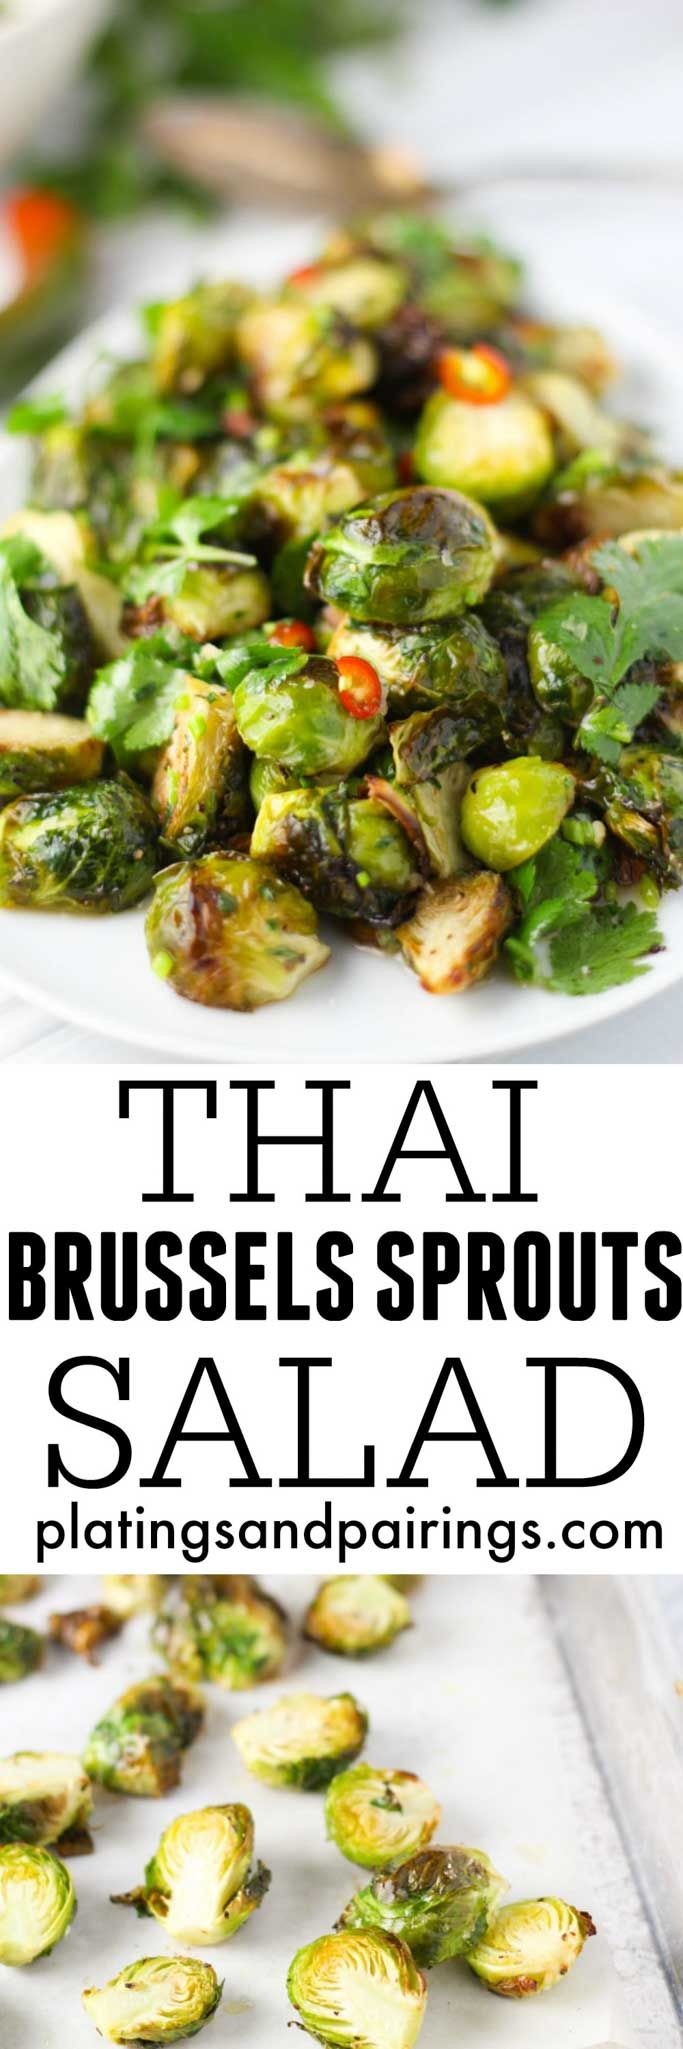 Sprouts, Fish sauce and Vinaigrette on Pinterest